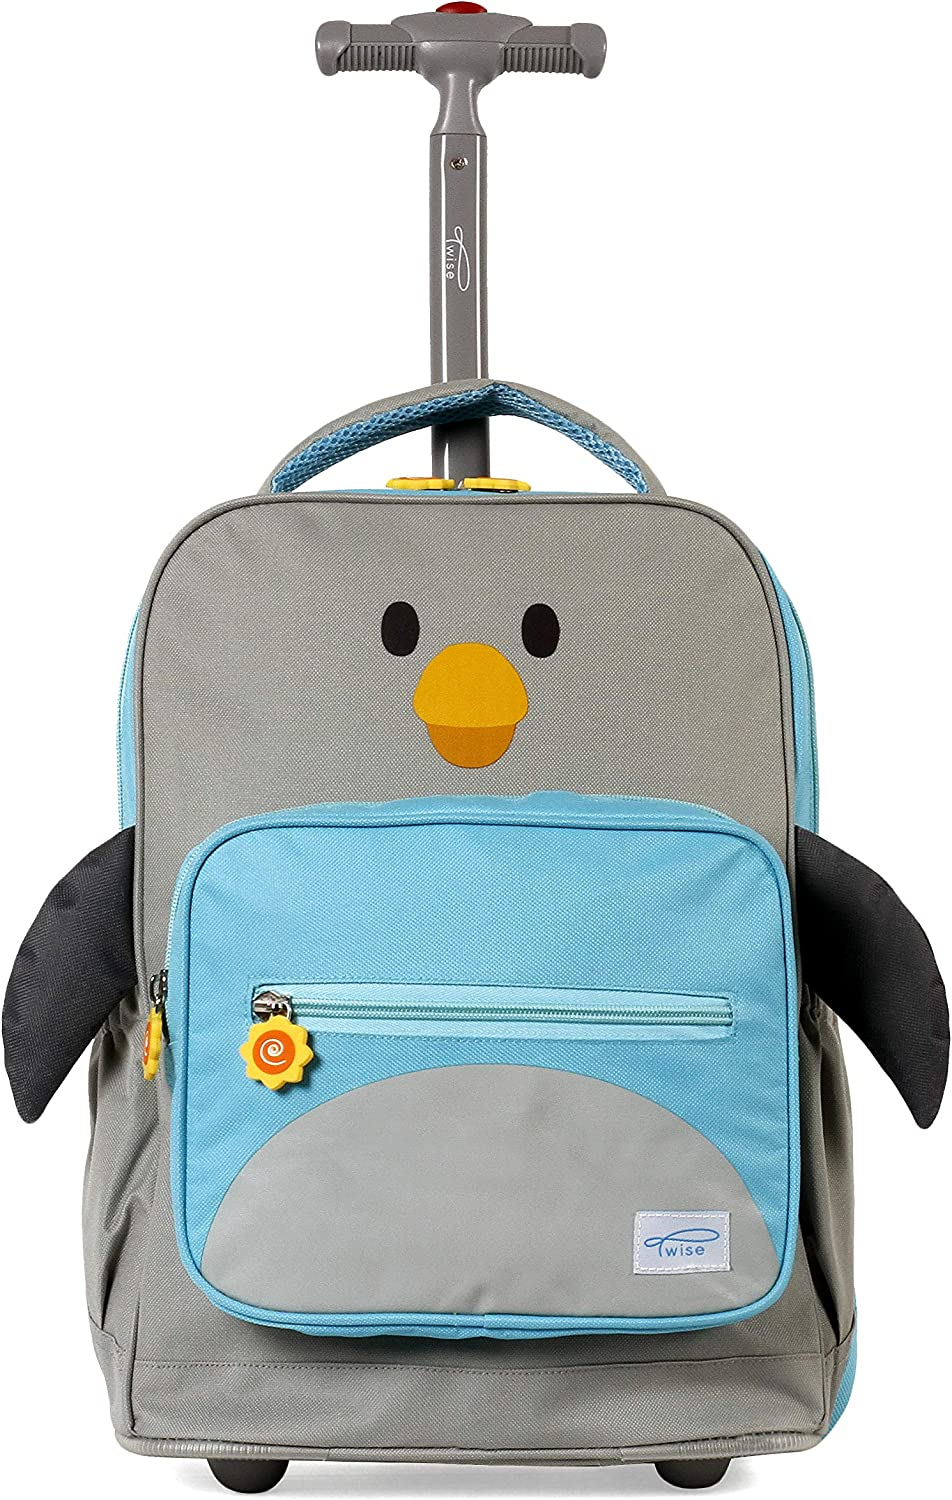 TWISE Max 88% OFF SIDE-KICK SCHOOL TRAVEL ROLLING KIDS TOD BACKPACK FOR AND Special sale item